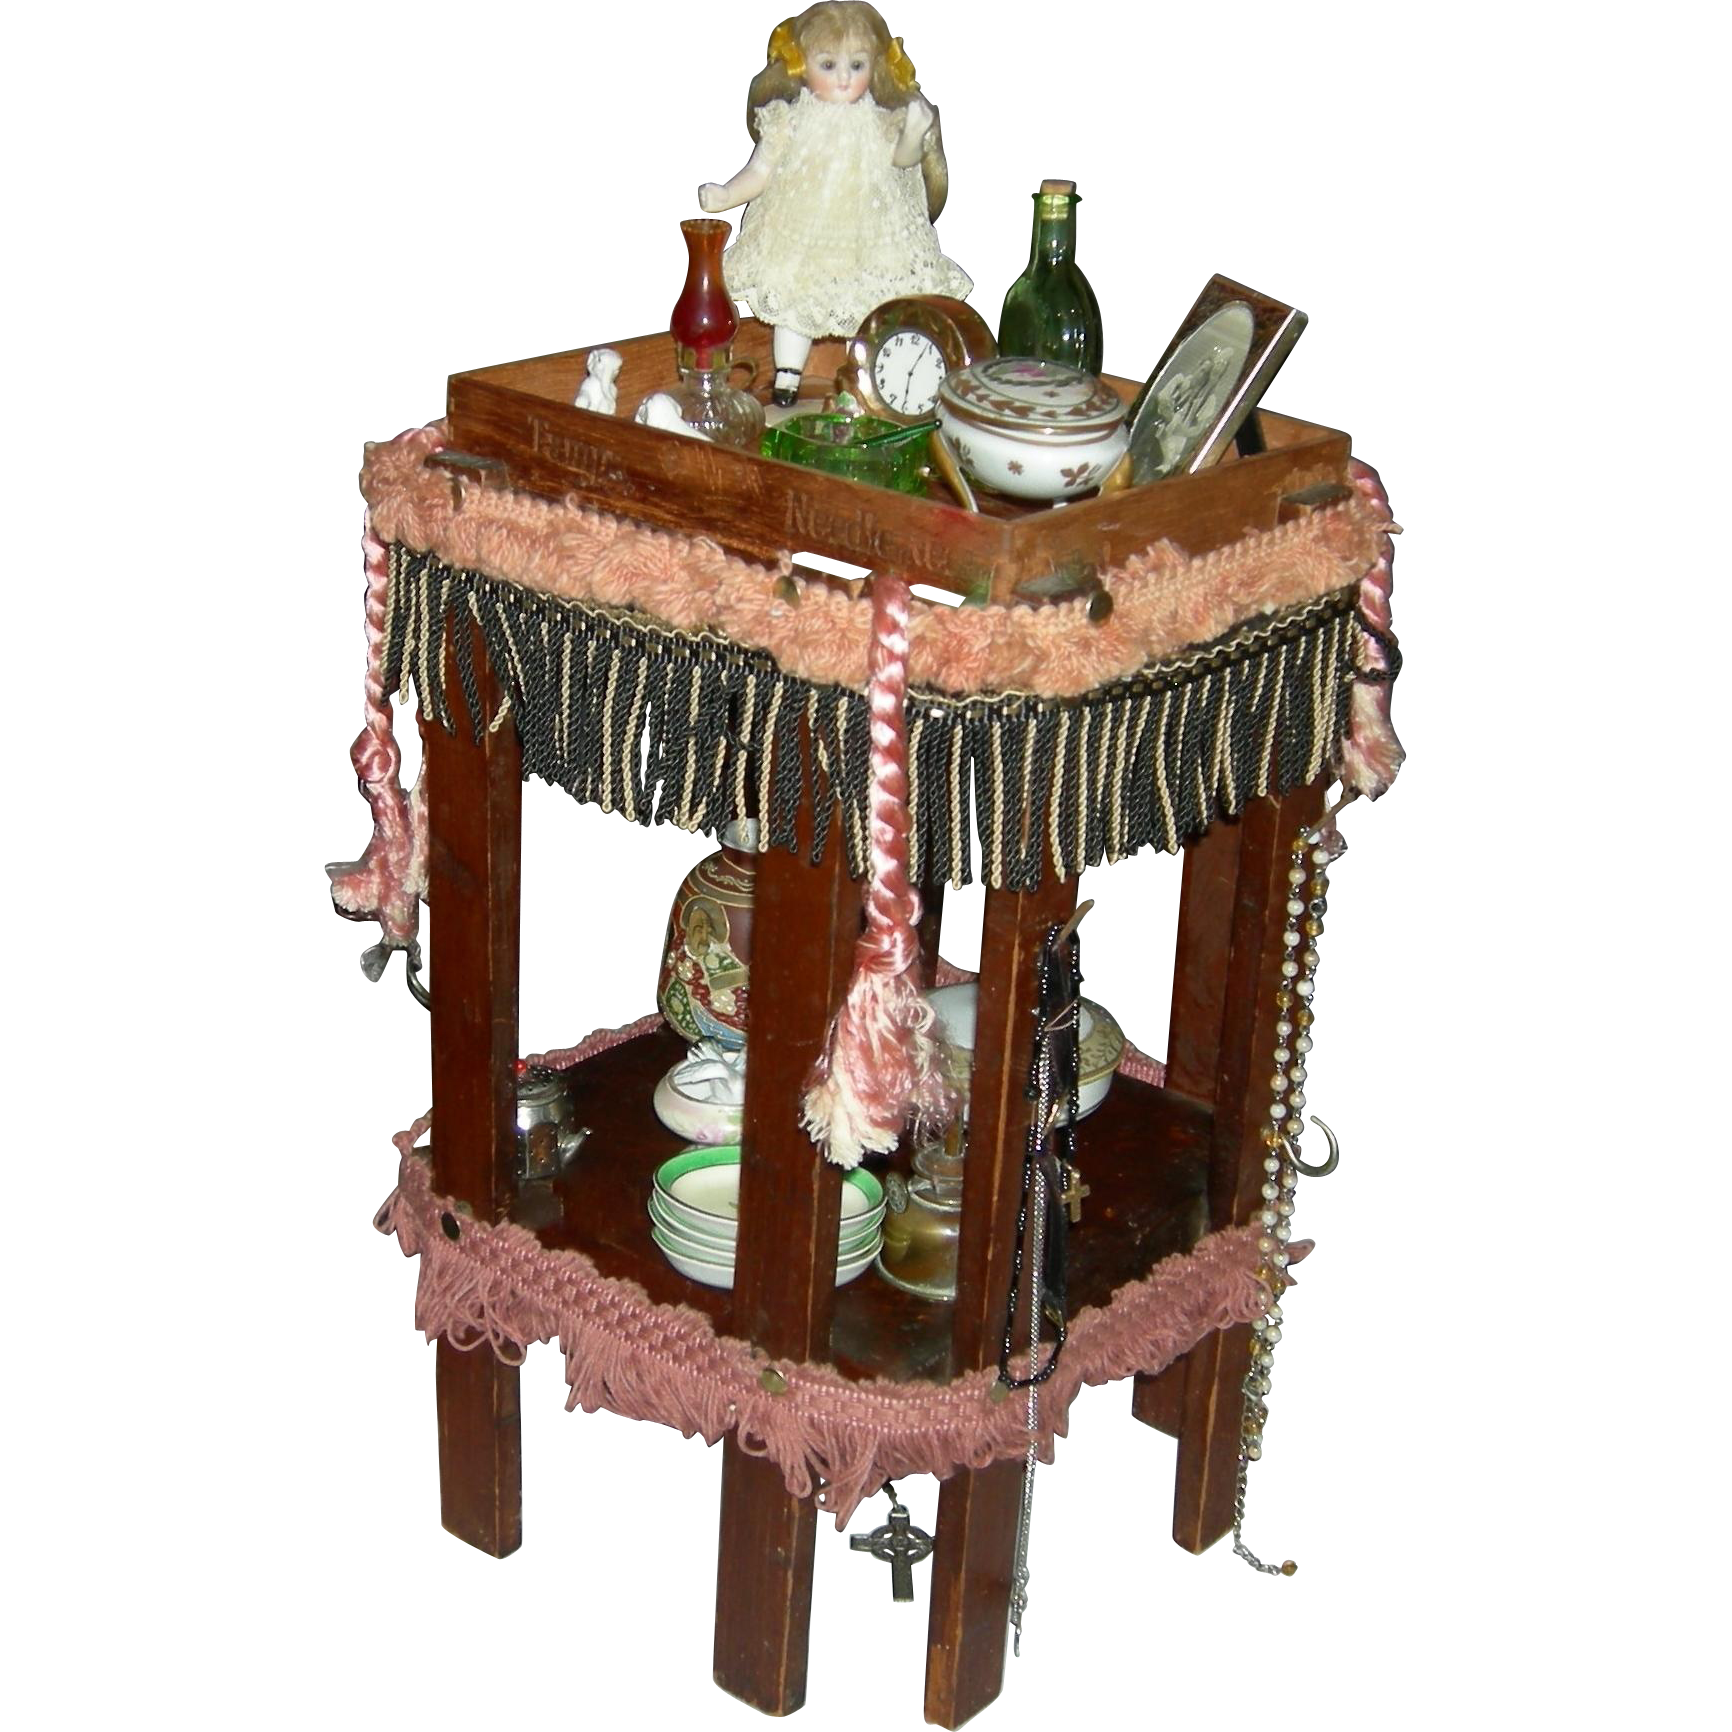 """DOLL'S TABLE - Vintage - Handmade - 14"""" High - With Hooks For Hanging Objects!!"""